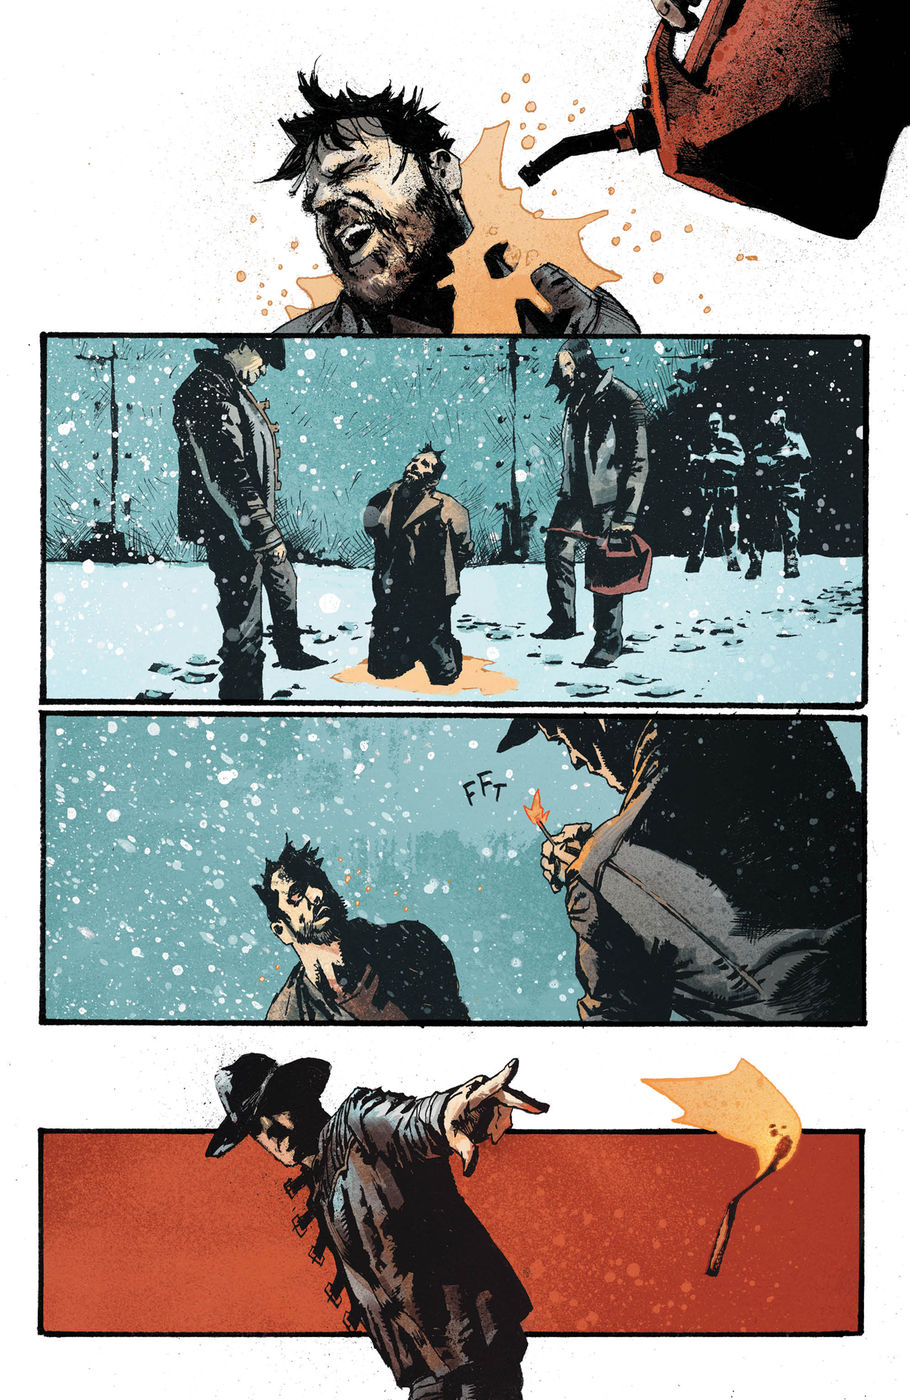 Frostbite #1 Preview at TFAW.com